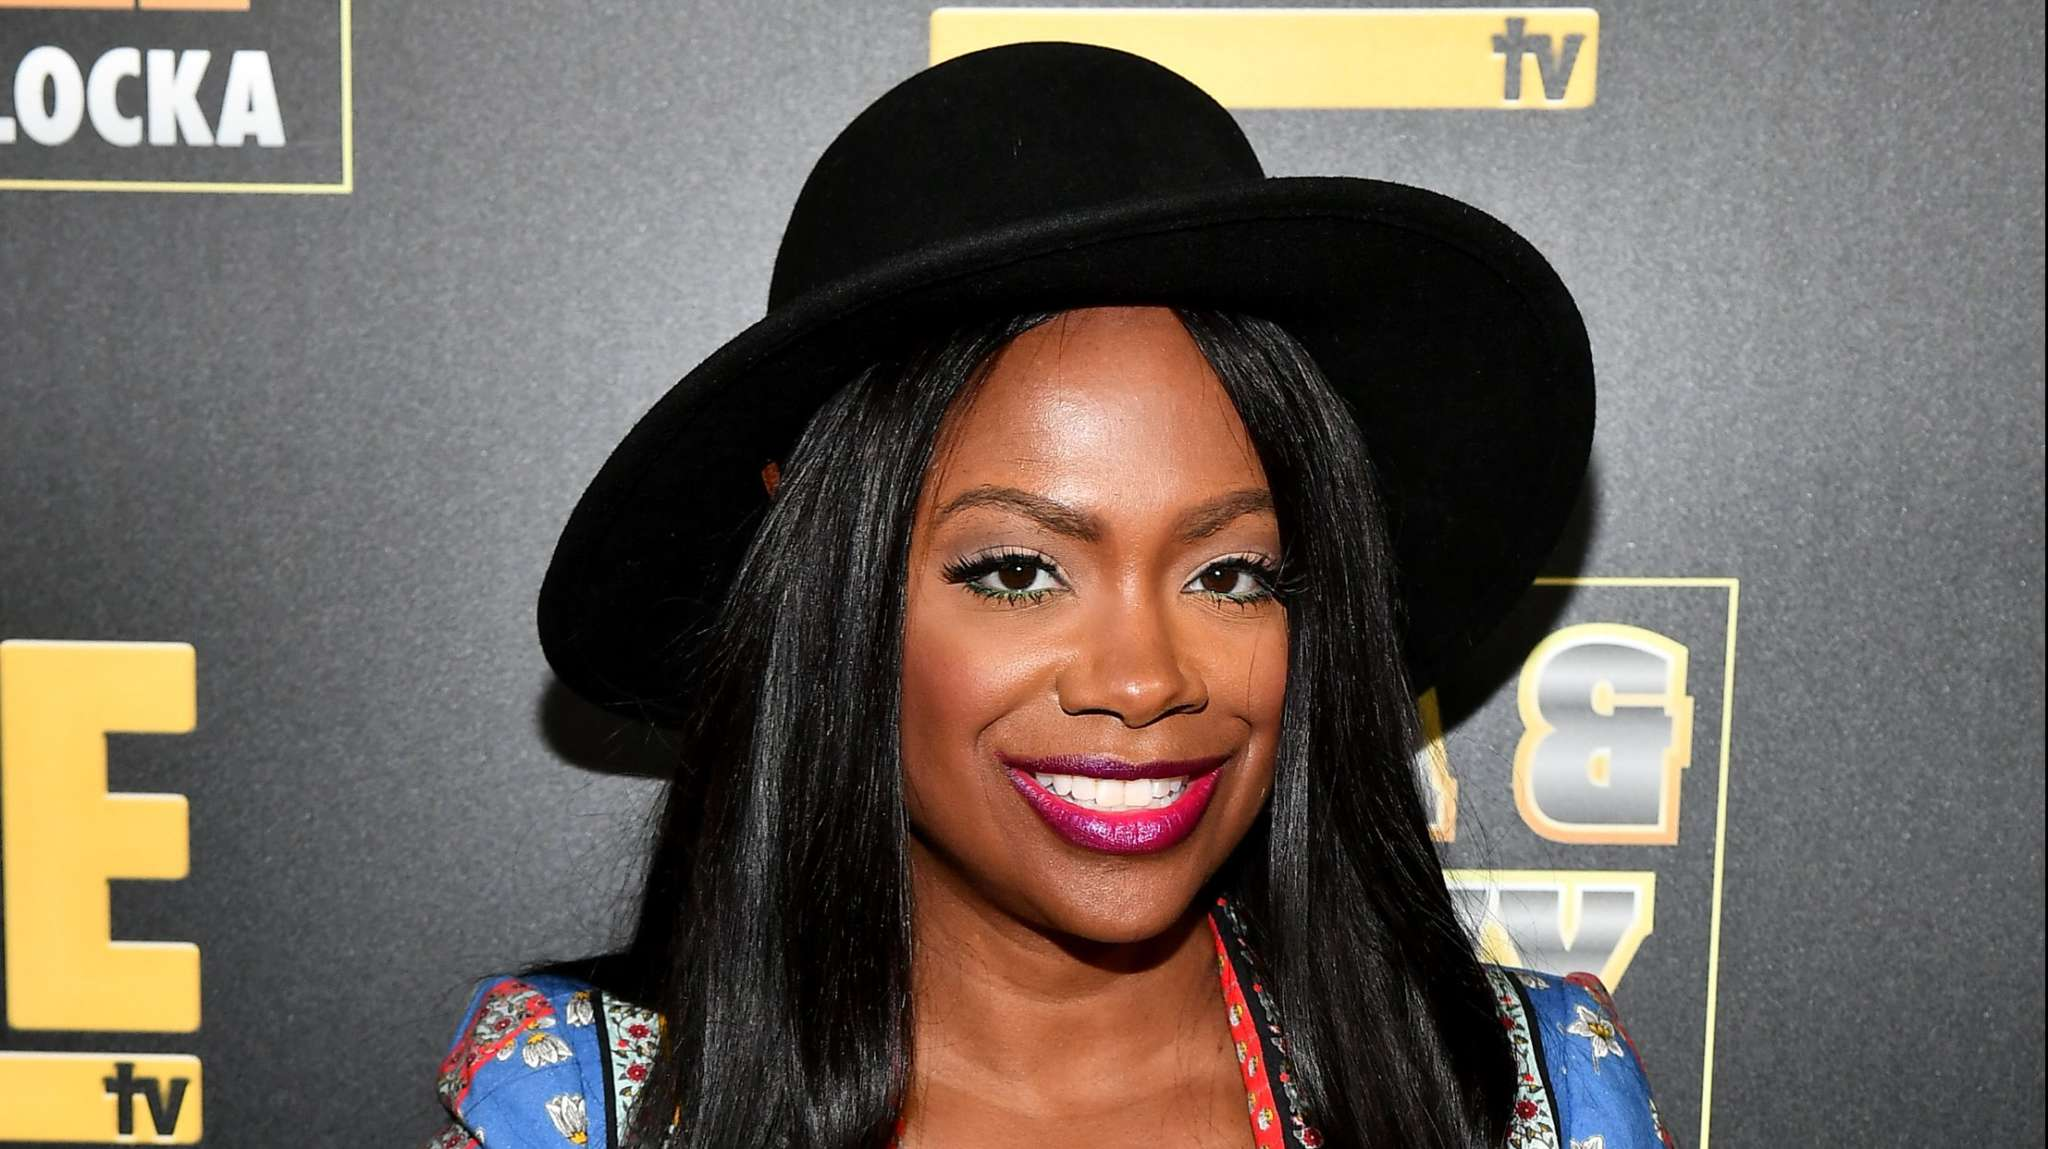 Kandi Burruss Shows Fans The Video That Moved Her Recently: 'This Is A Powerful Song'